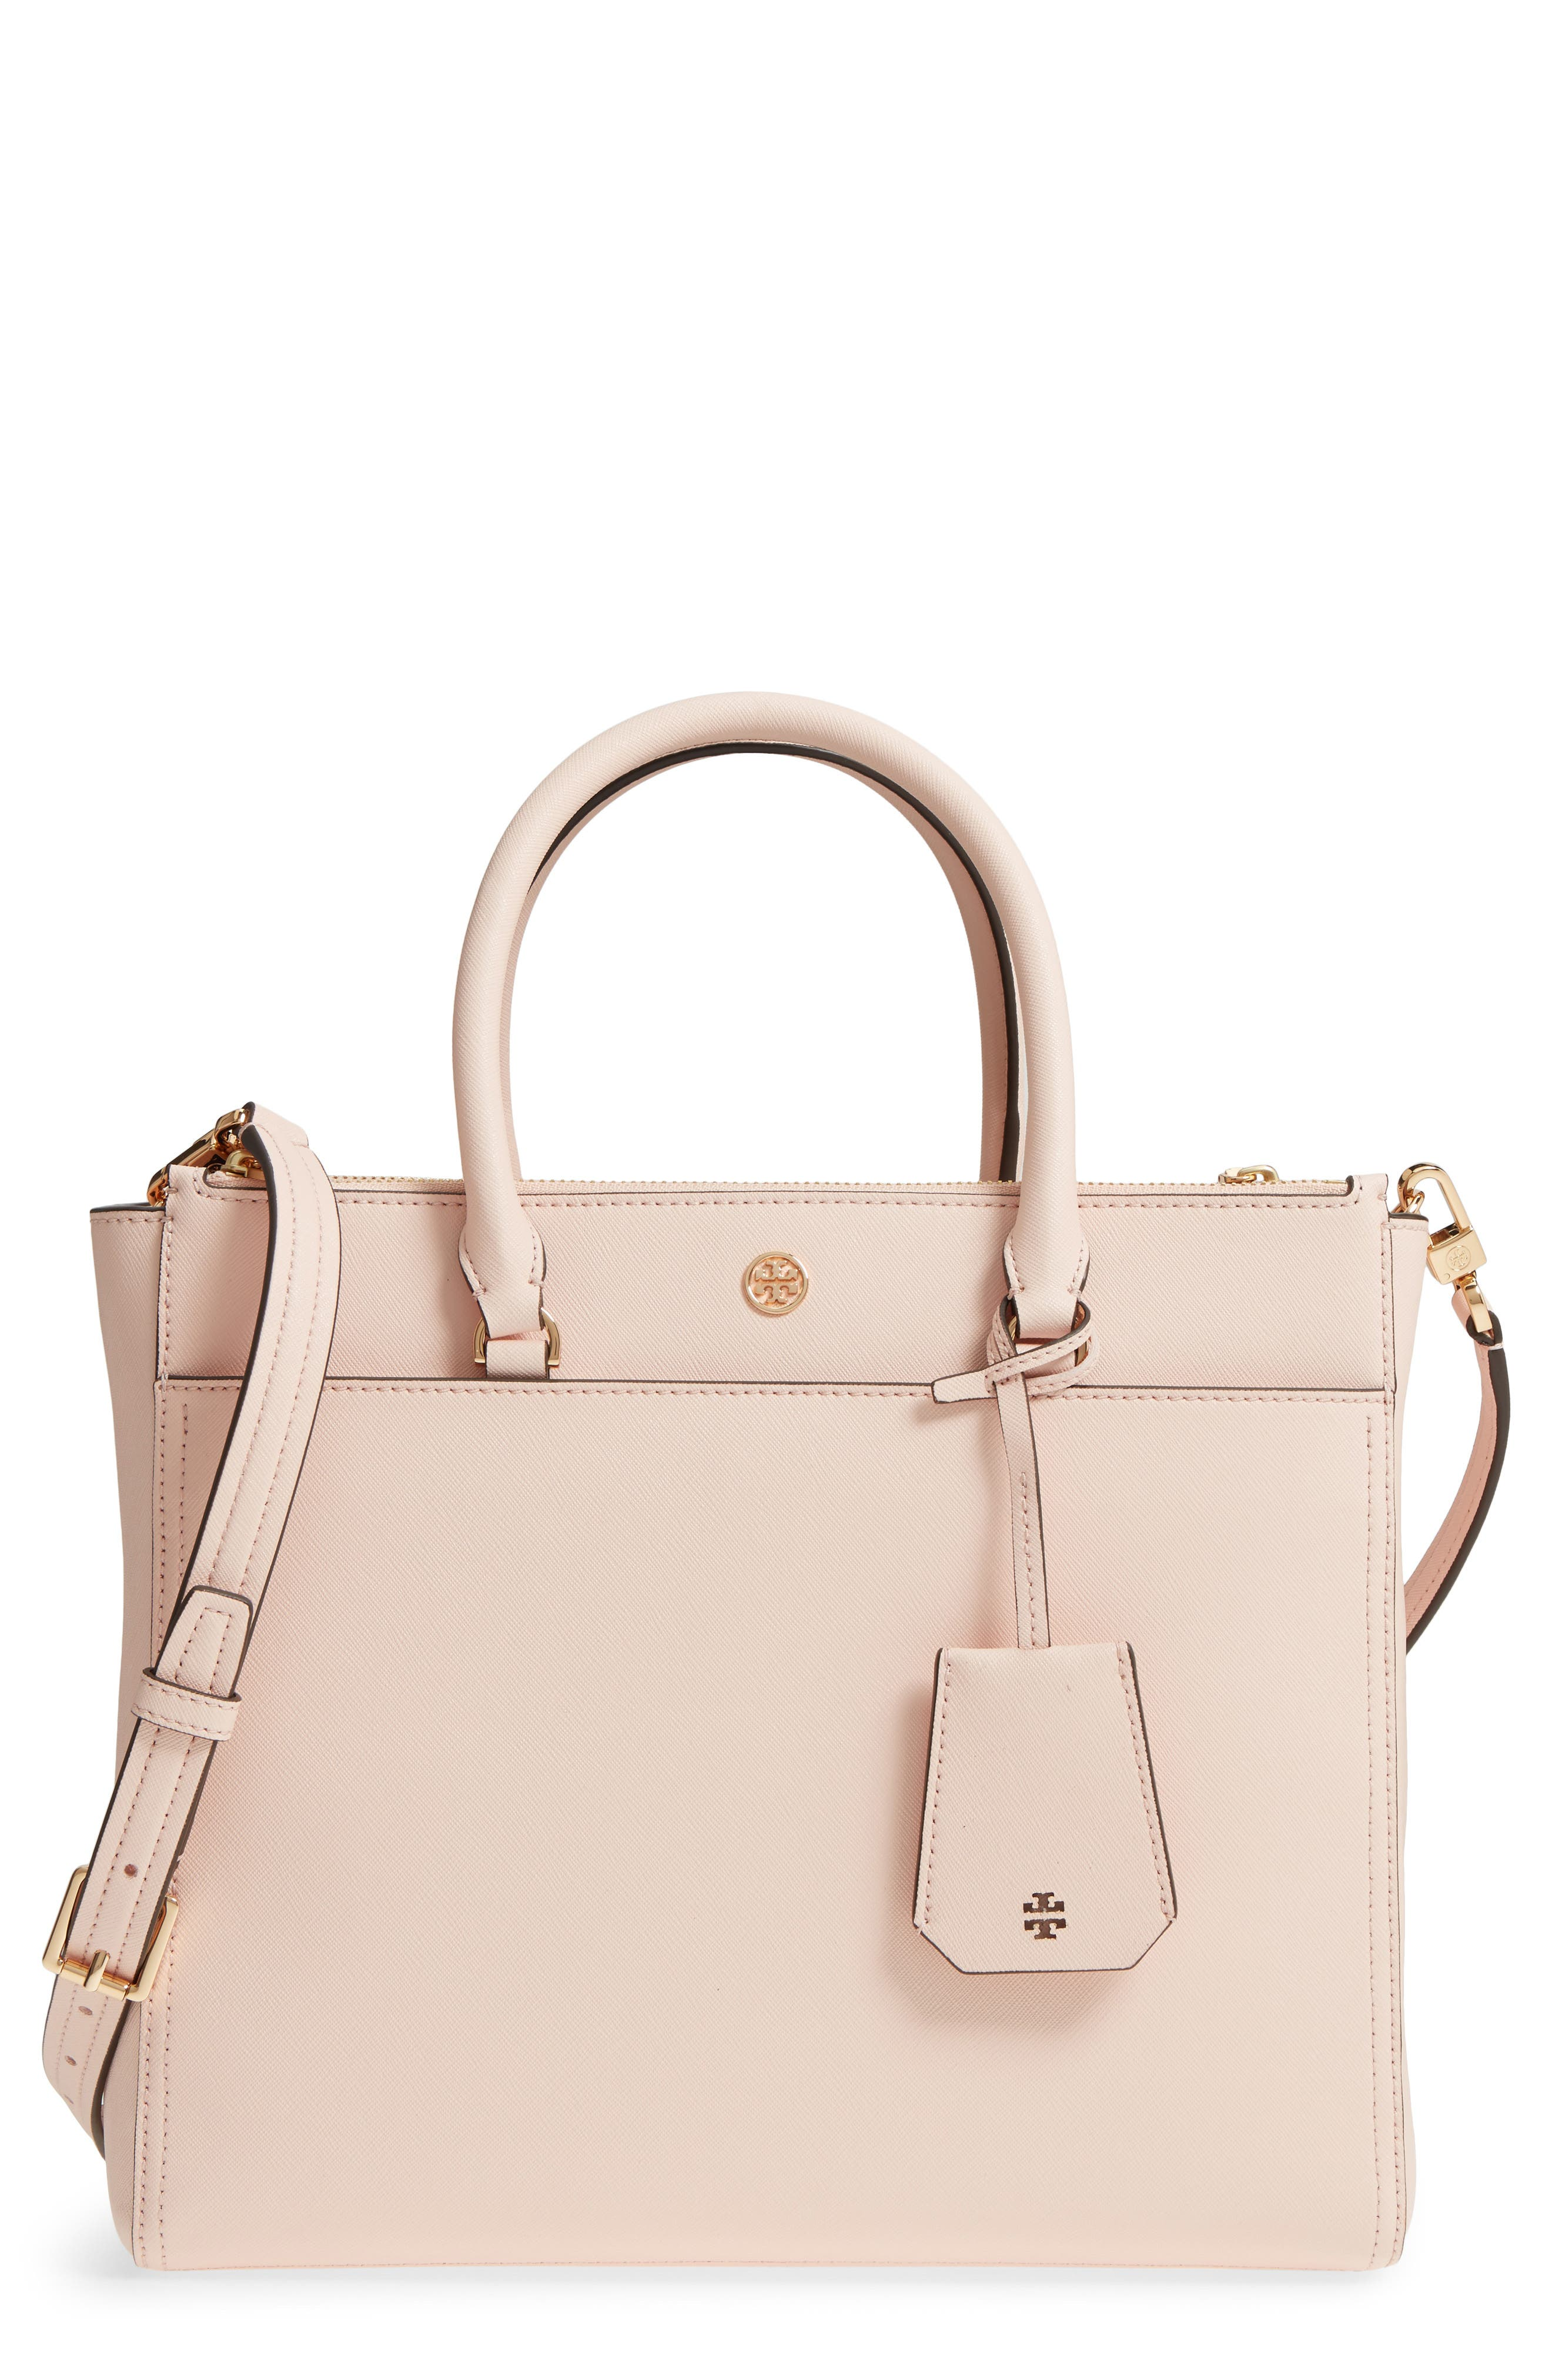 Robinson Double-Zip Leather Tote,                         Main,                         color, PALE APRICOT / ROYAL NAVY